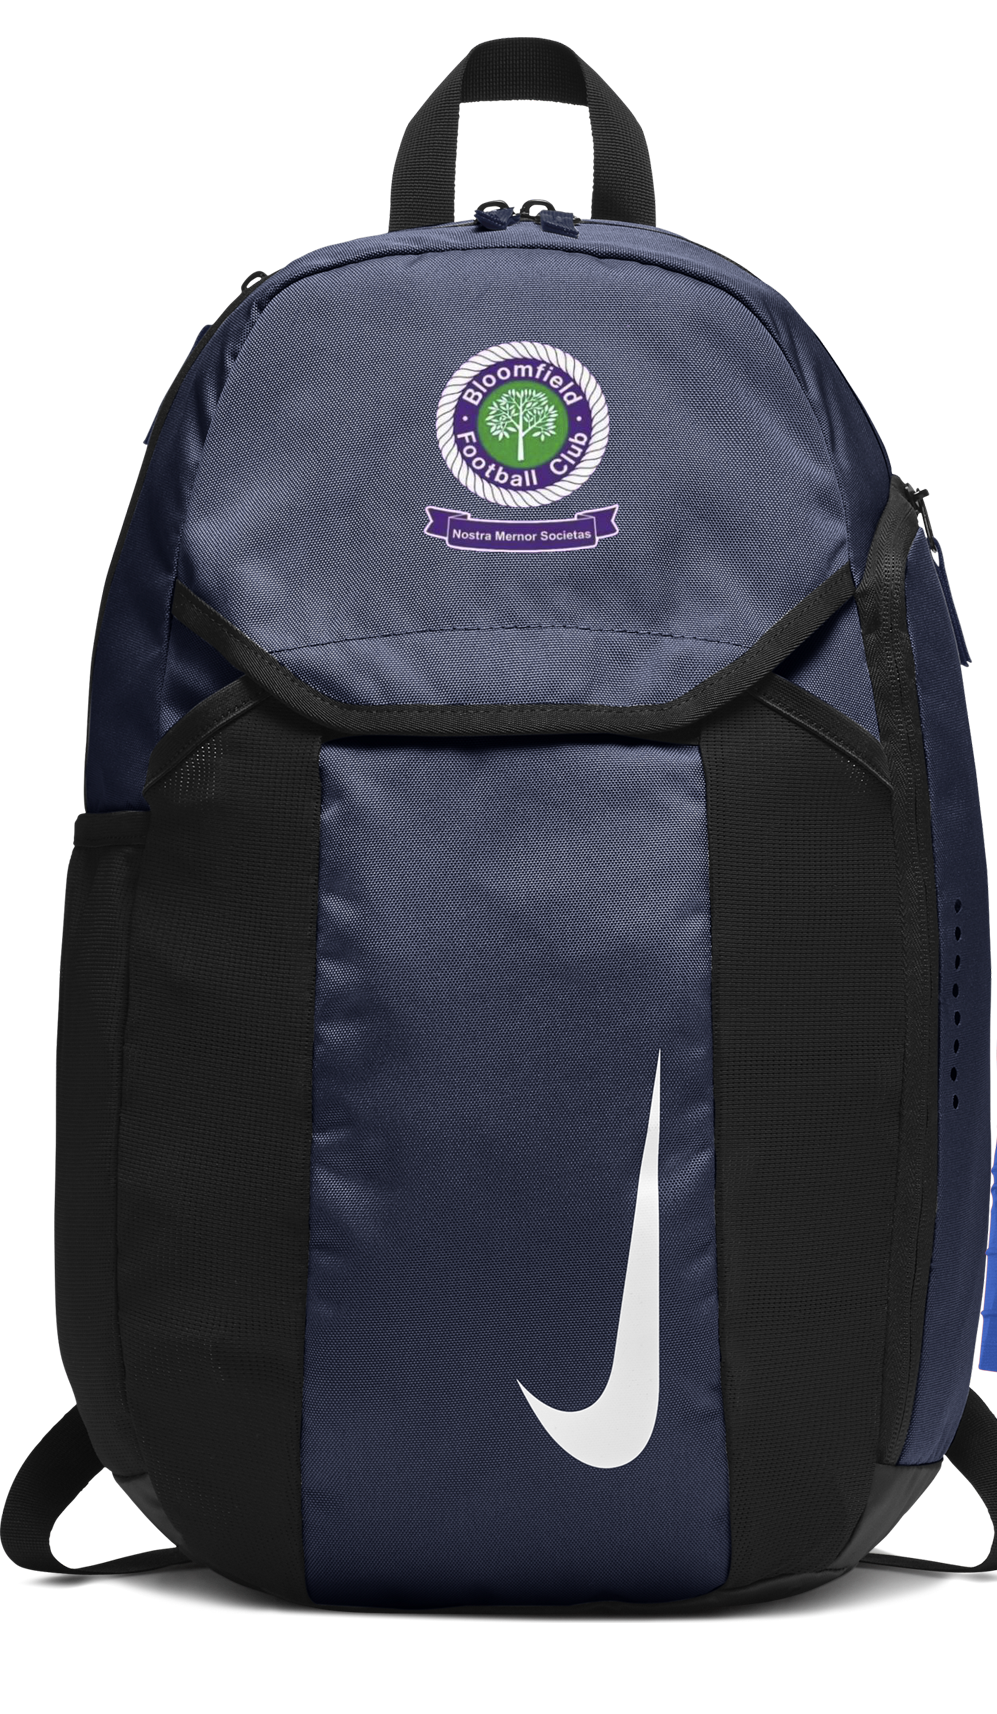 bloomfield back pack 36383 p